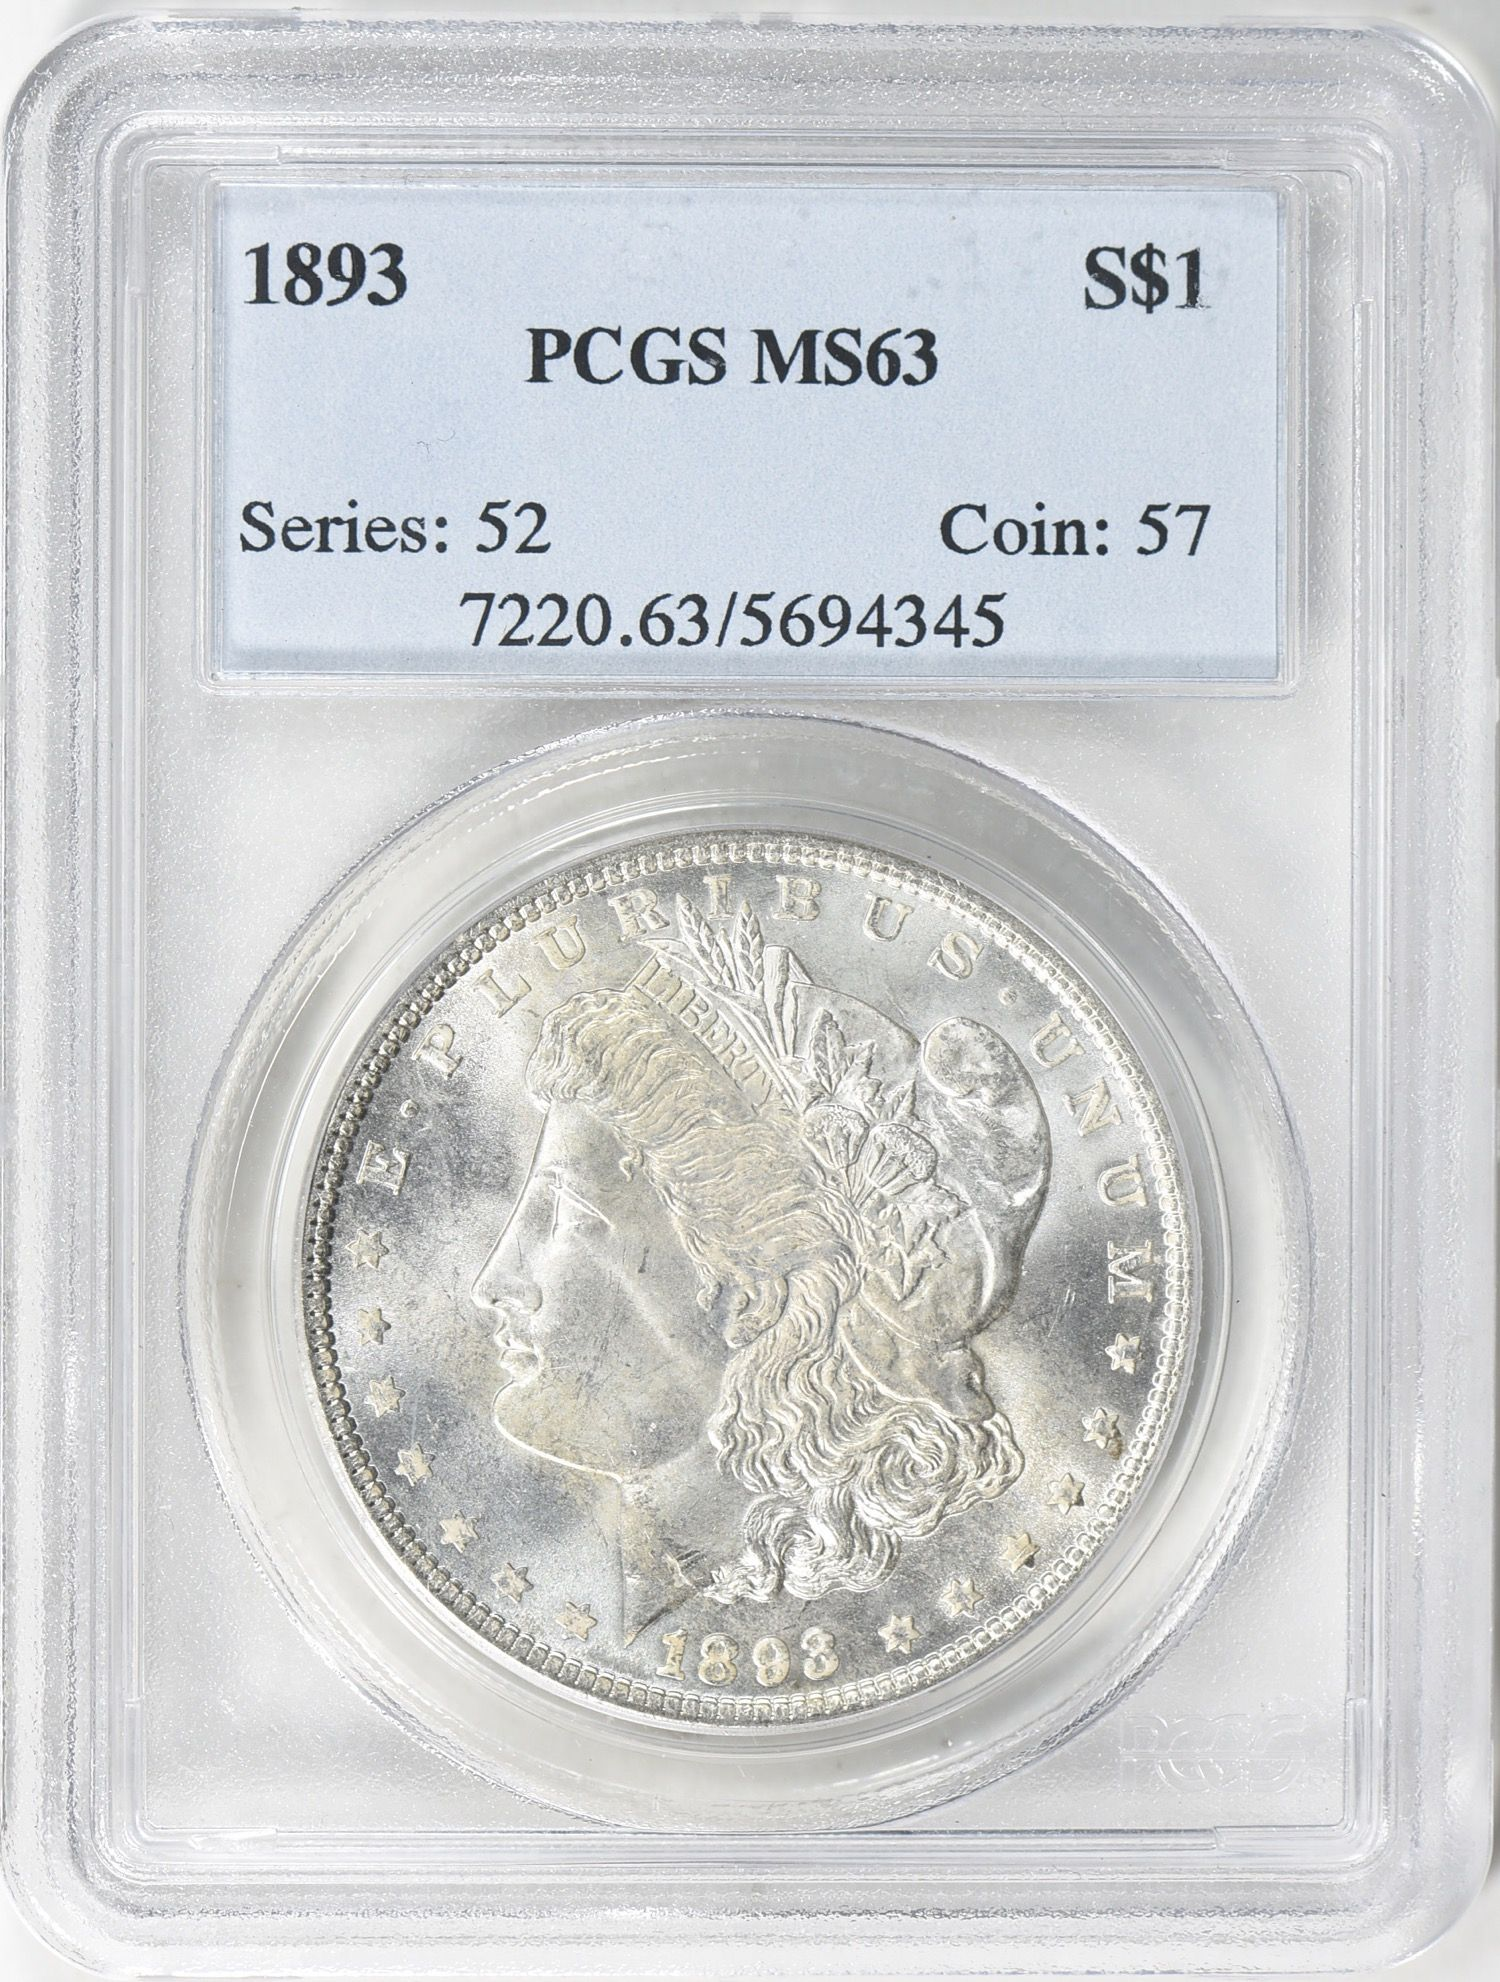 1893 Morgan Silver Dollar Pcgs Ms 63 From The Corning Collection Of U S Coins 1893 Morgan Silver Doll Morgan Dollars Morgan Silver Dollar Silver Dollar